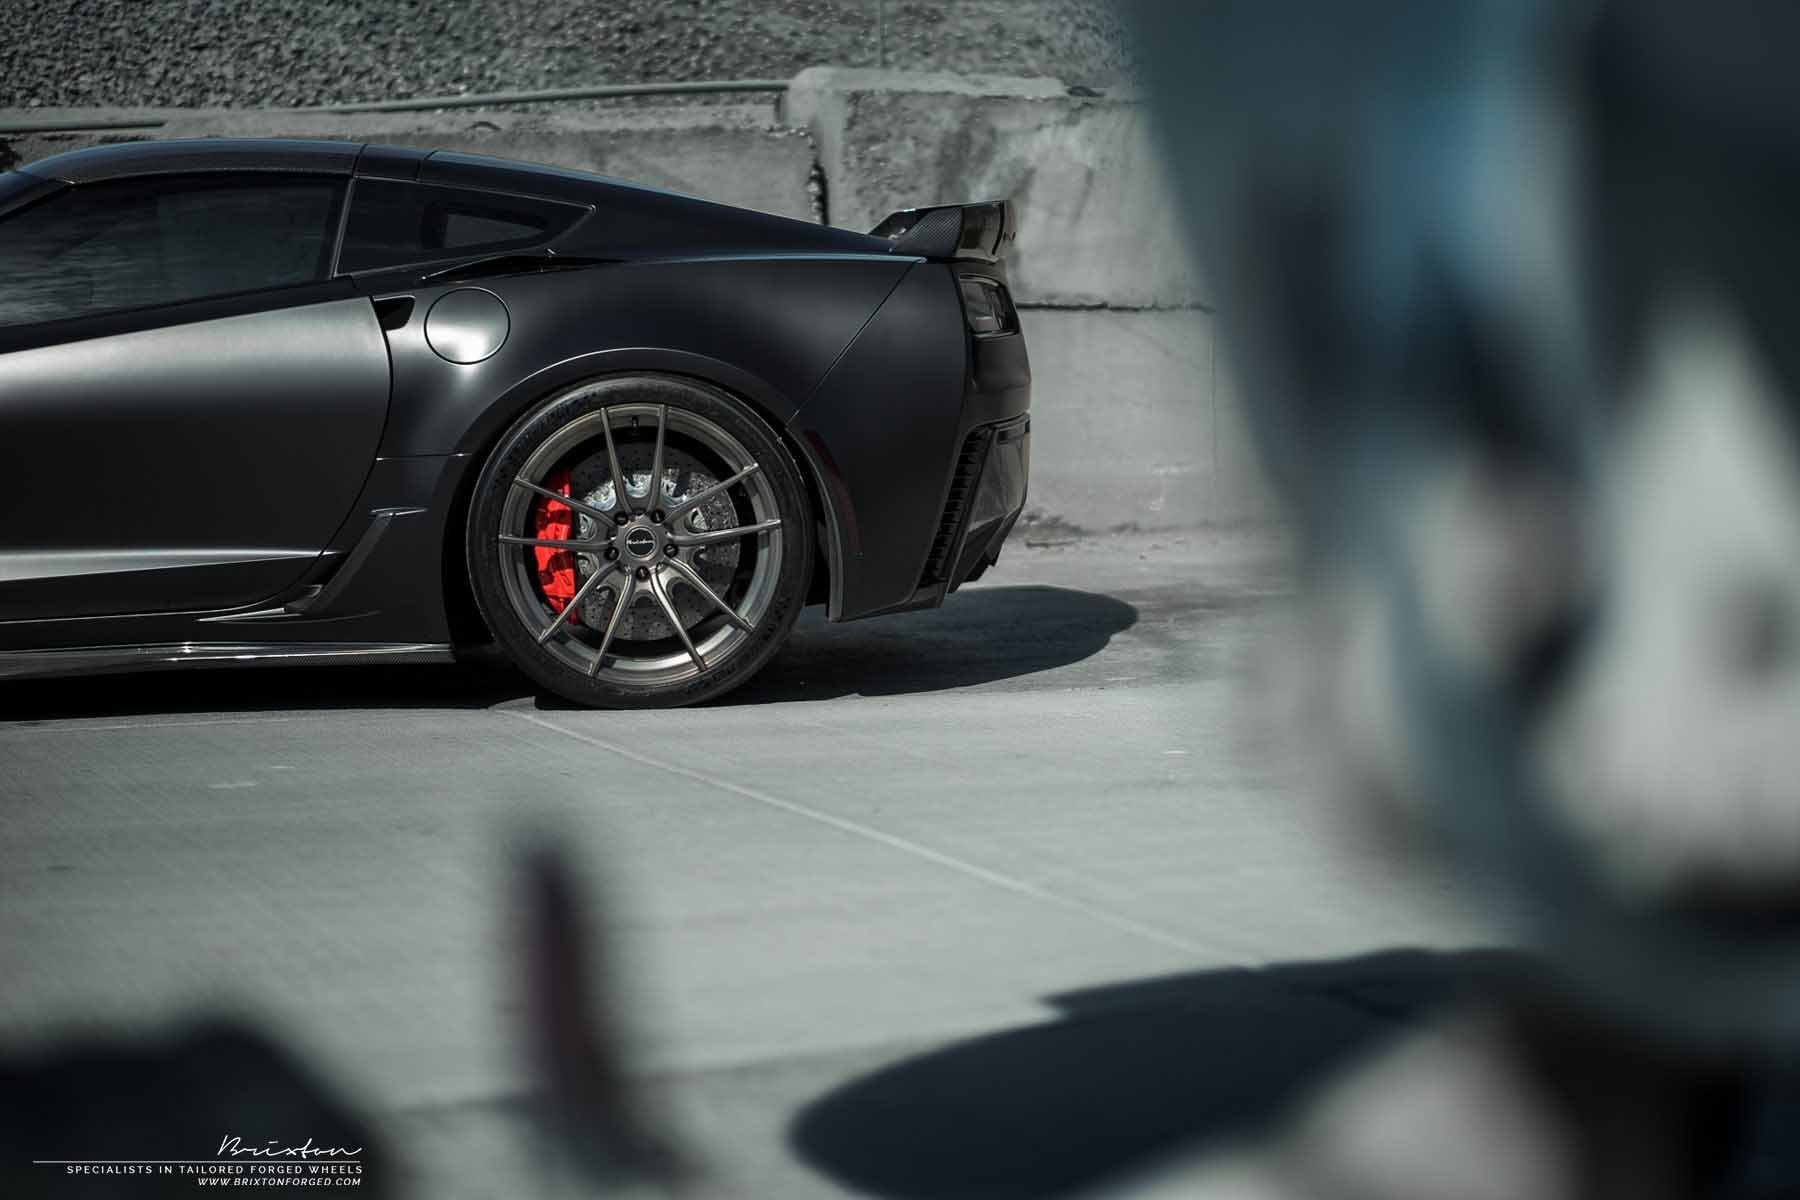 images-products-1-2303-232974591-black-corvette-c7-z06-forged-wheels-brixton-forged-m53-ultrasport-1-piece-brushed-smoke-black-ma.jpg